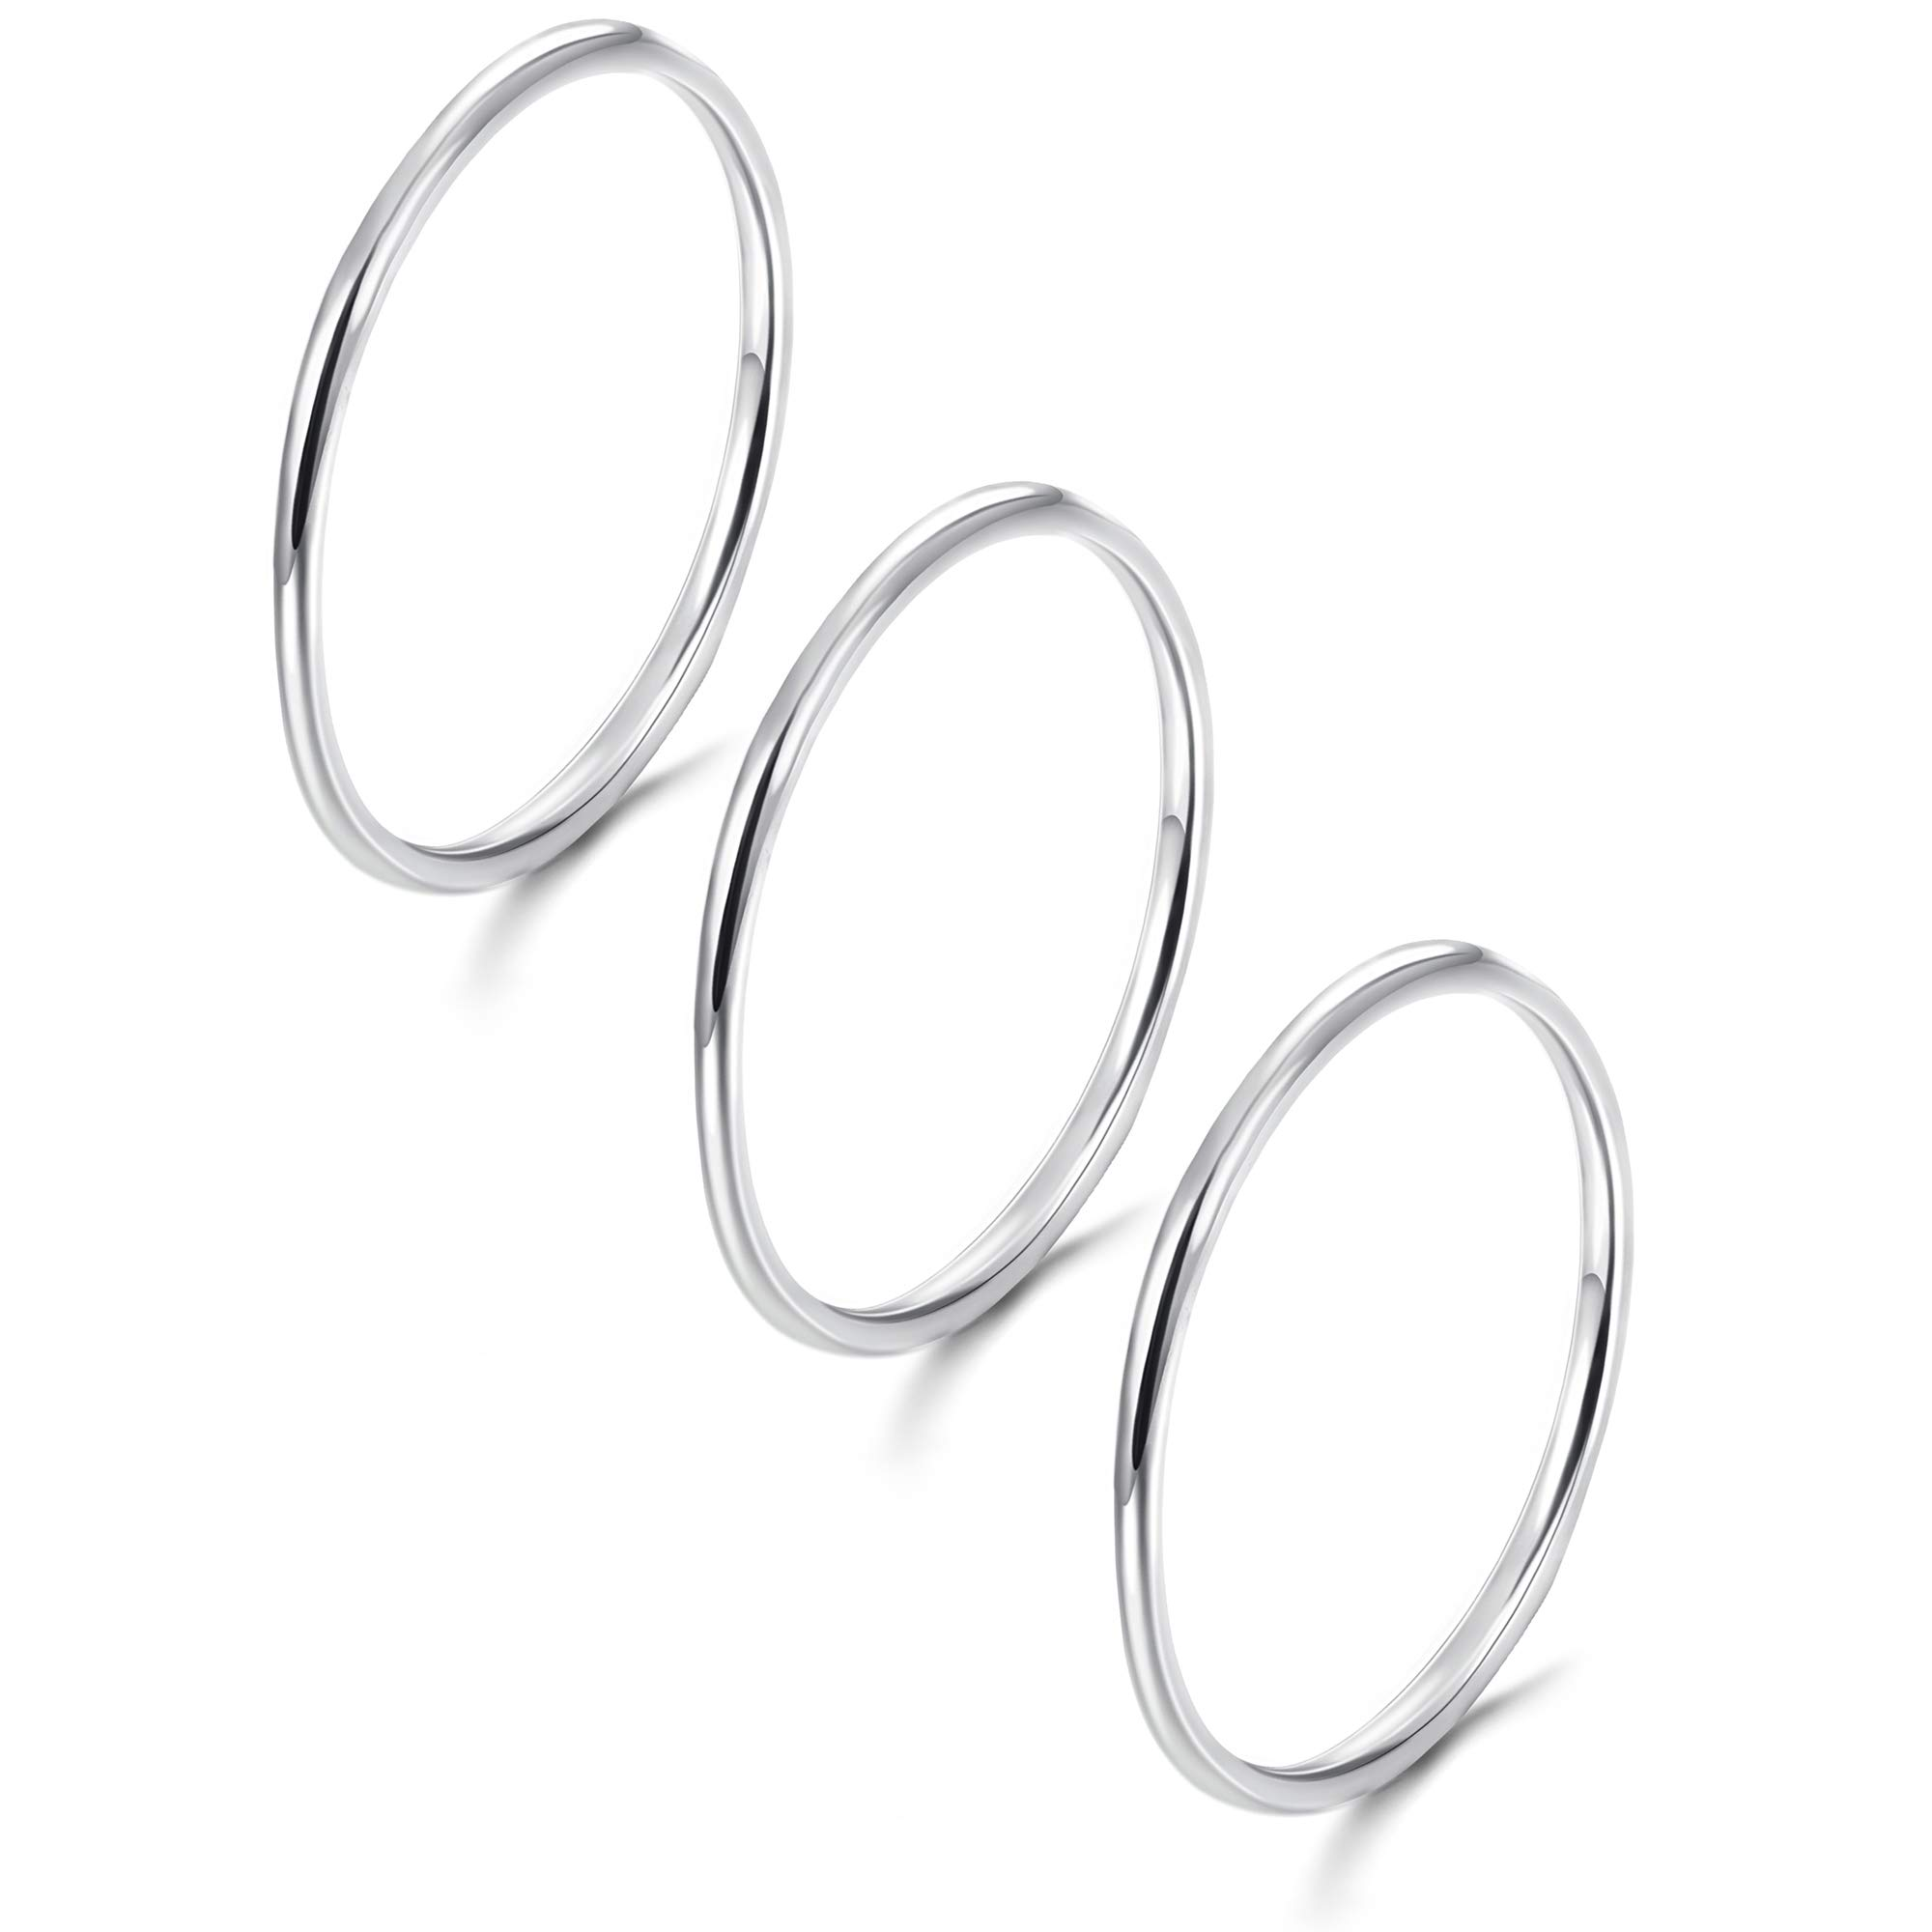 Sllaiss 3pcs Knuckle Stackable Rings 925 Sterling Silver Midi Stacking Rings for Women Finger Band Stacking Rings Set Hypoallergenic 1mm